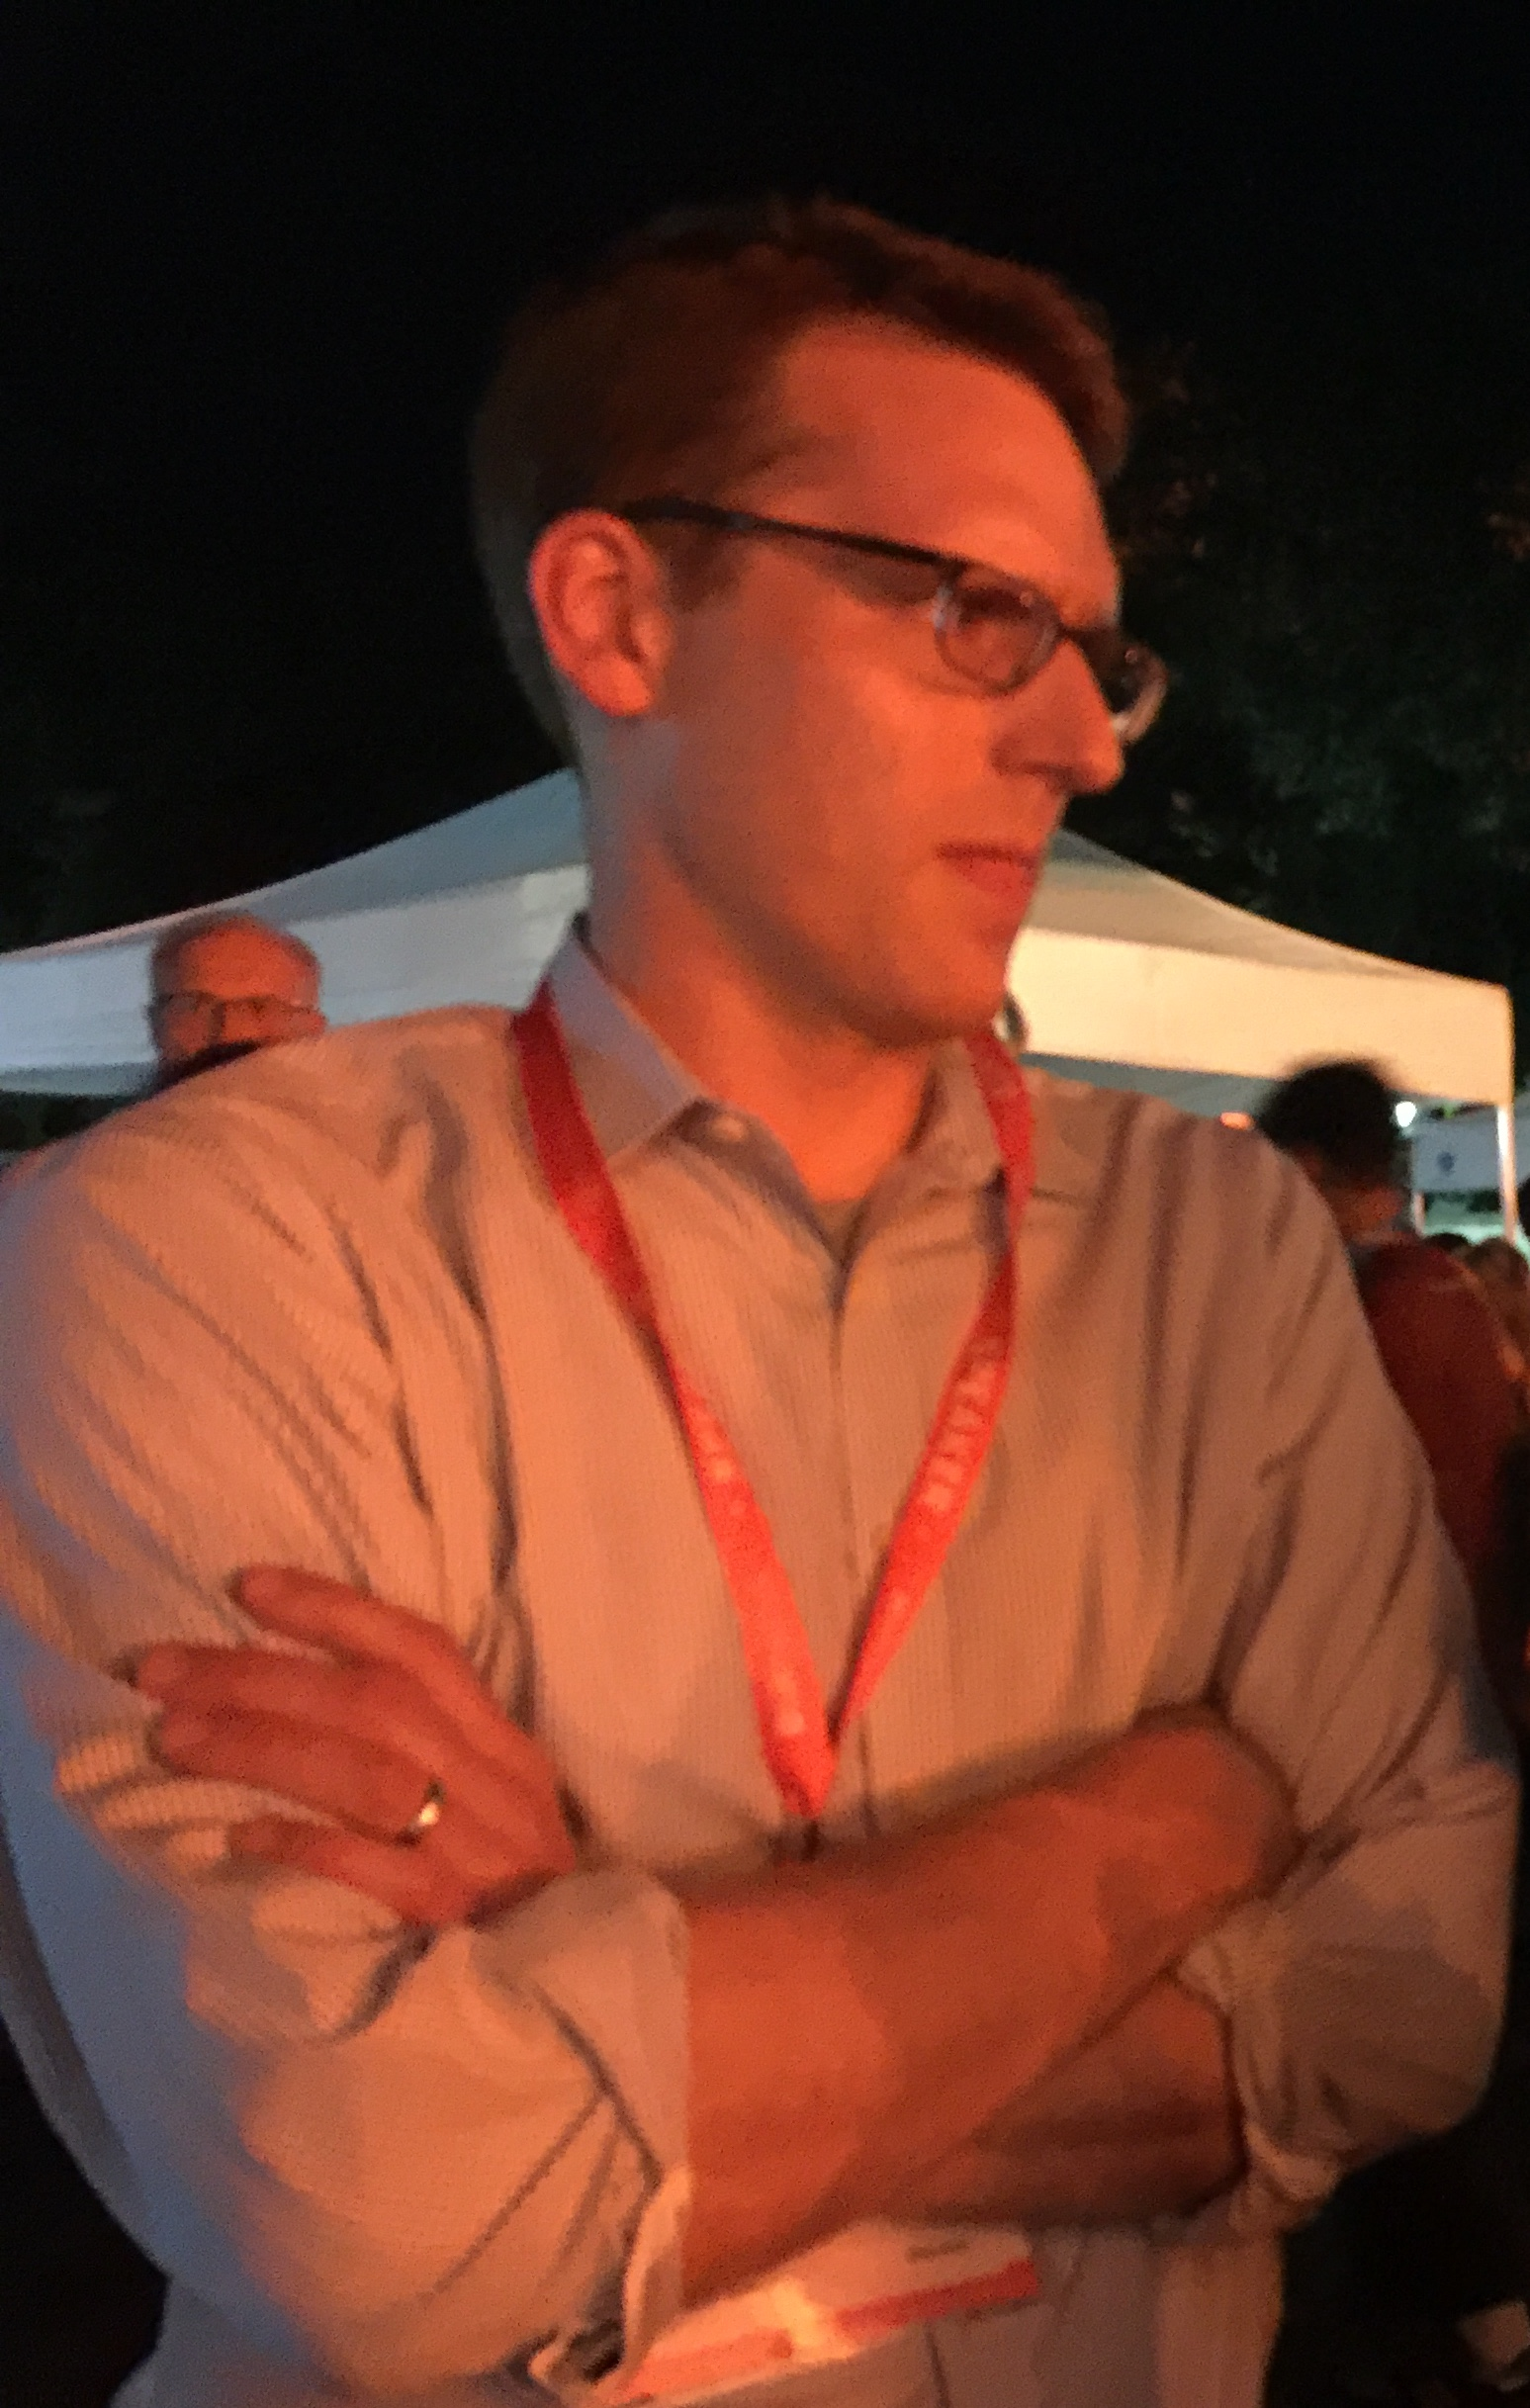 September 2017 - Excited to talk with the Washington Post's David A. Fahrenthold, who won a Pulitzer Prize for his dogged reporting on President Trump. David is an honorary